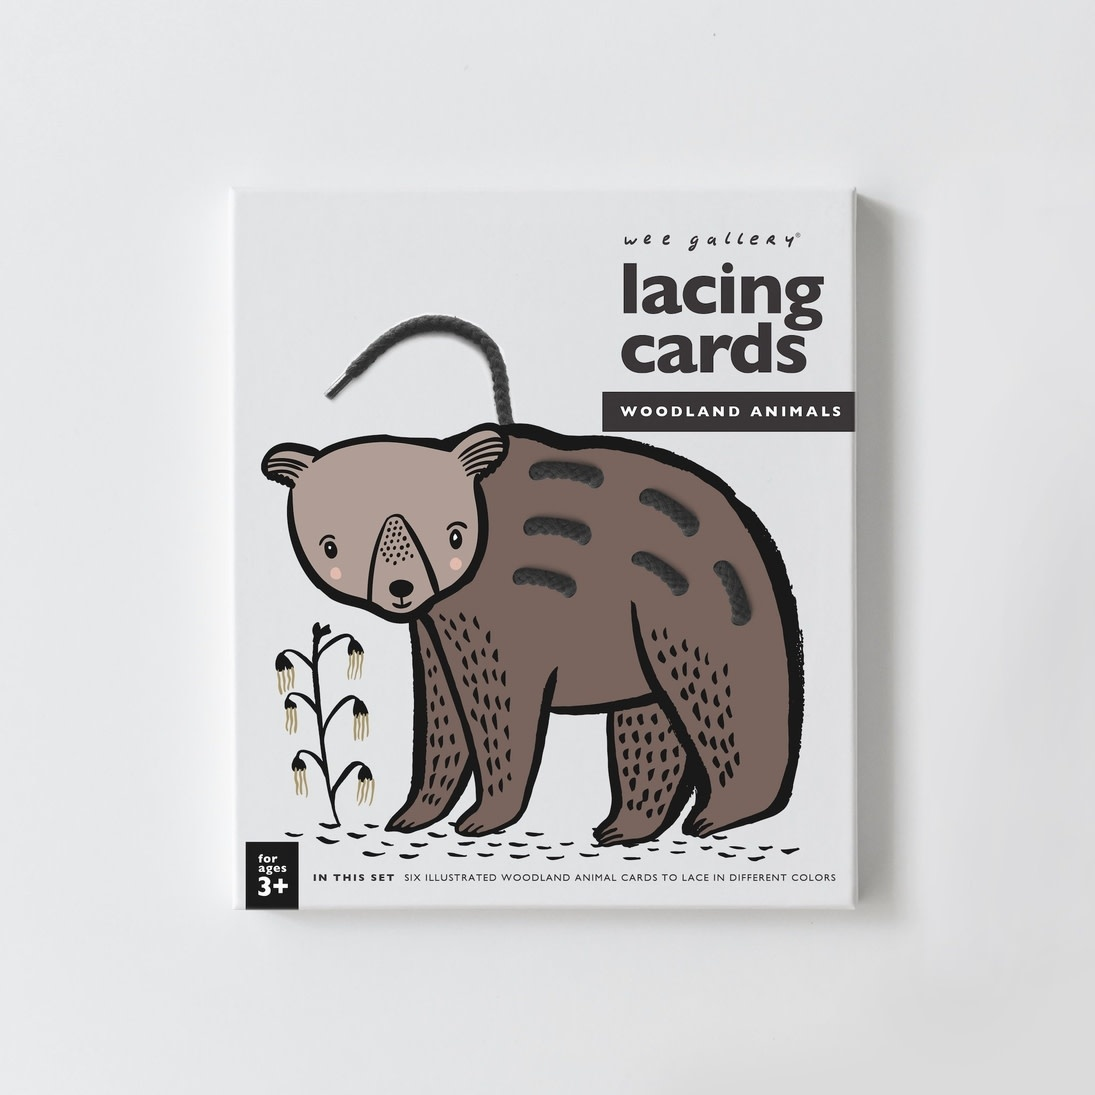 Wee Gallery Lacing Cards, Woodland Animals